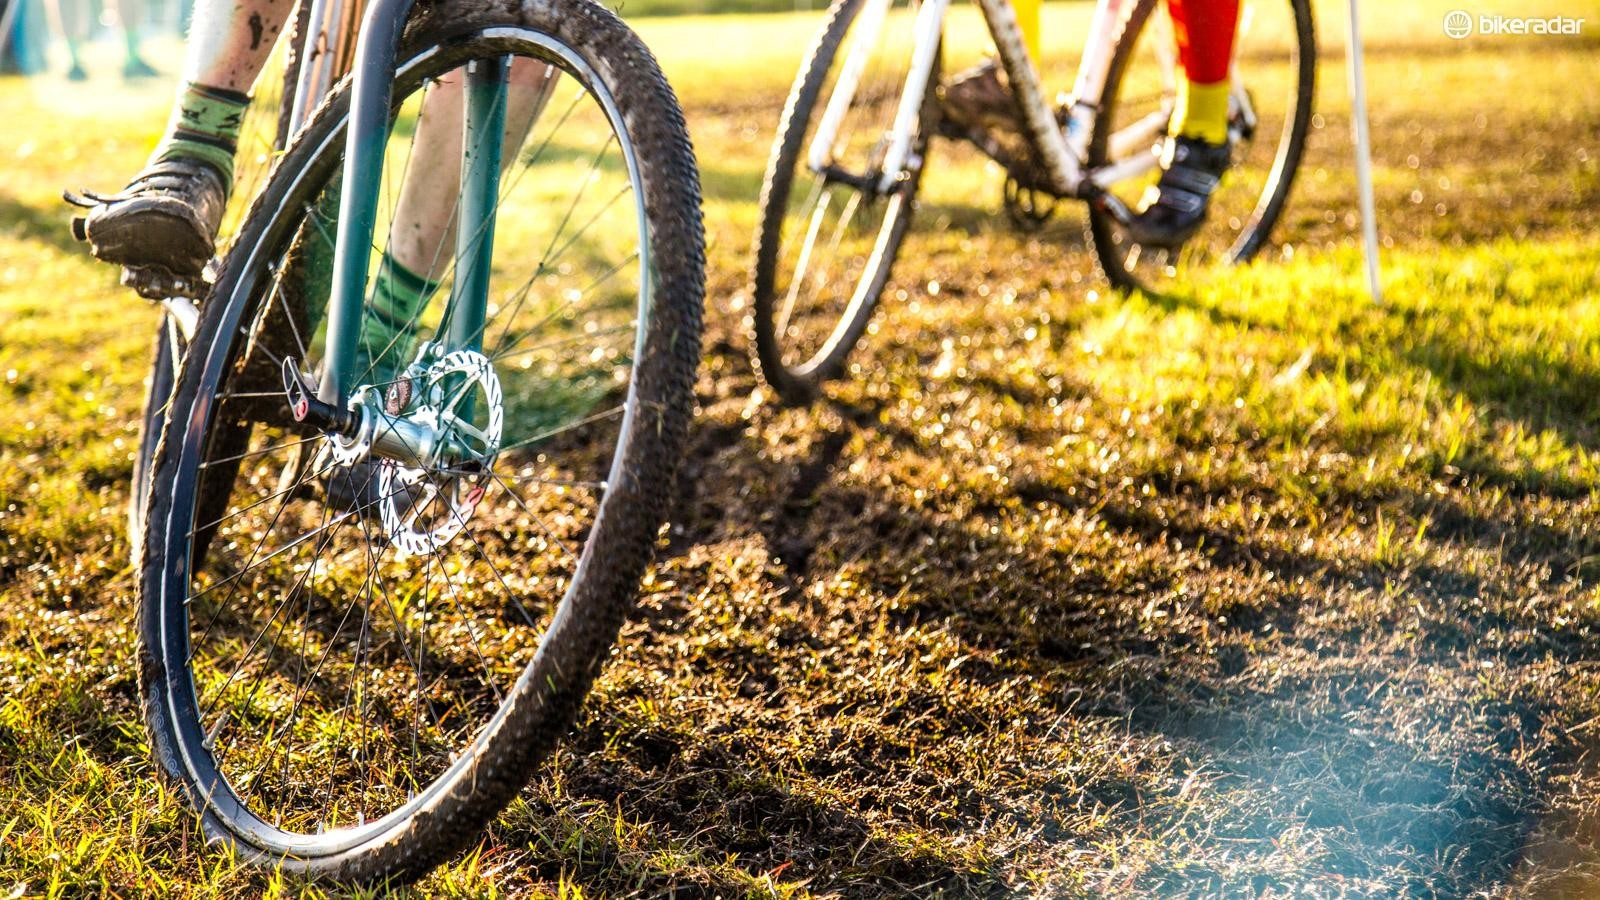 Riding a CX bike will help you to improve your handling skills